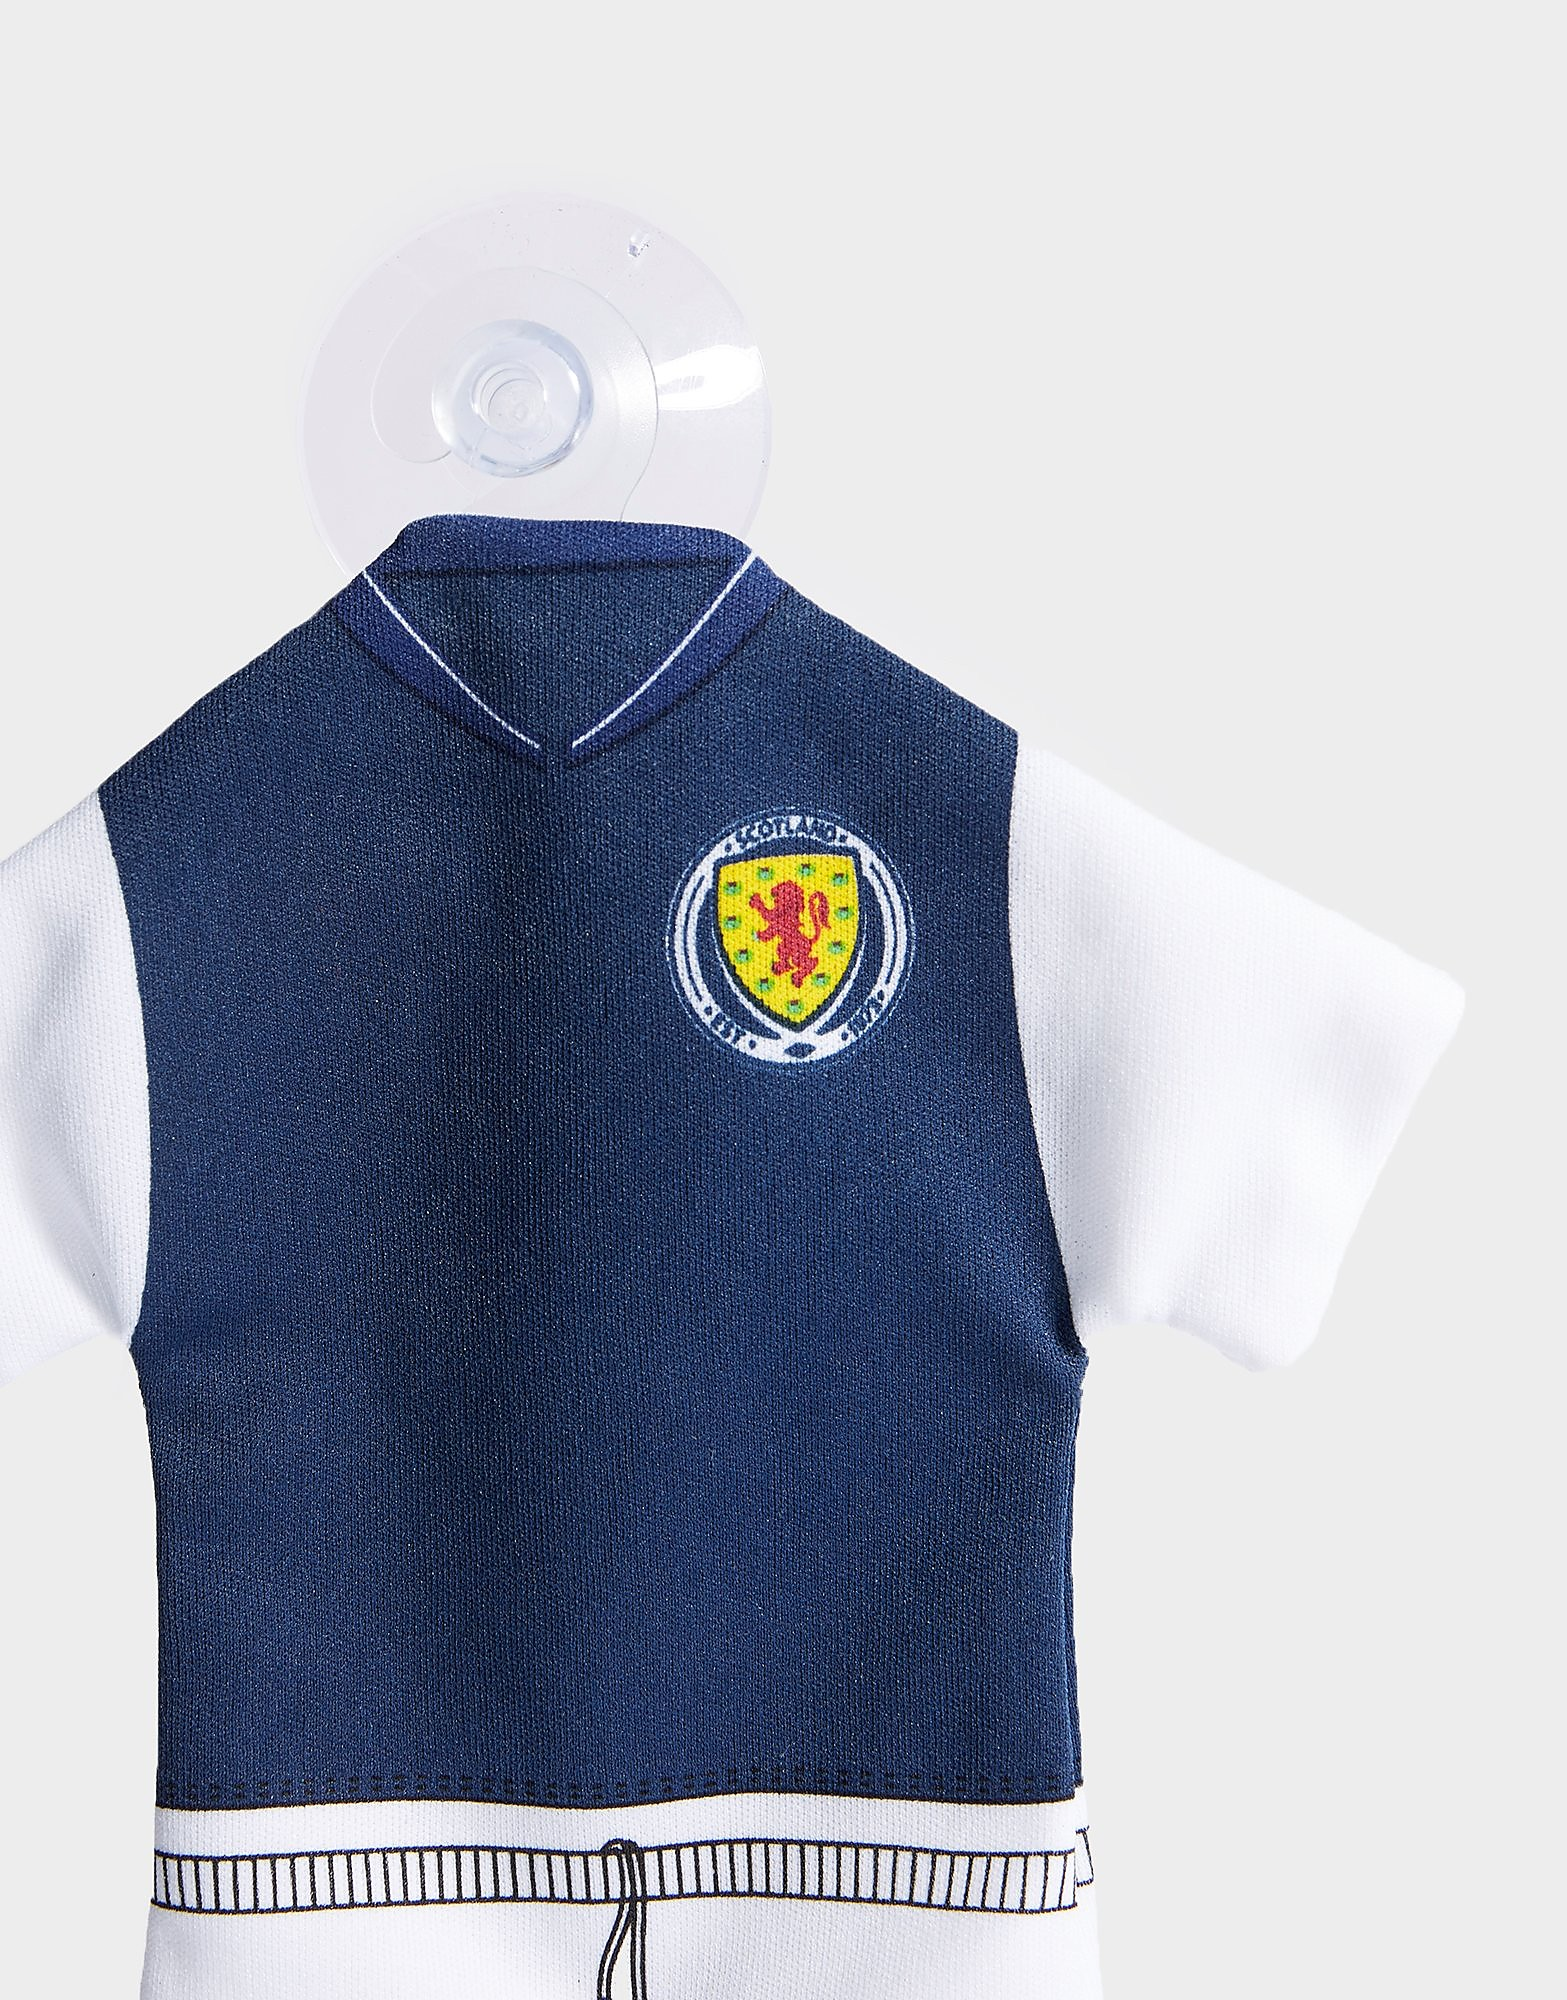 Official Team Autohanger Scotland FA-thuisuniform